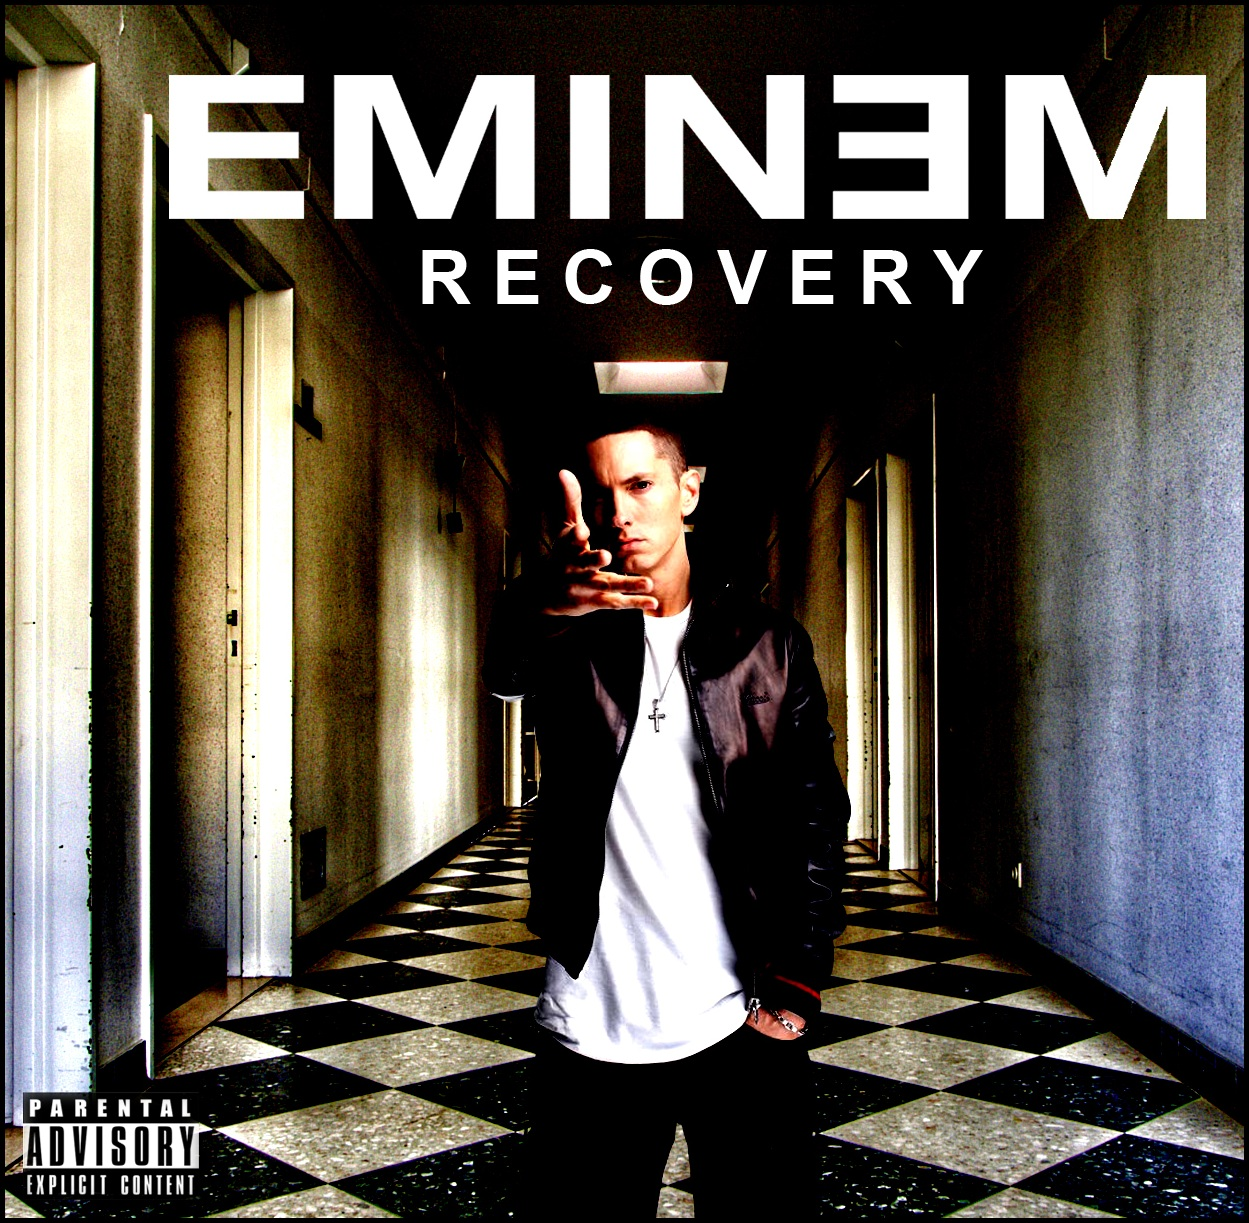 Lose yourself eminem mp3 song download.